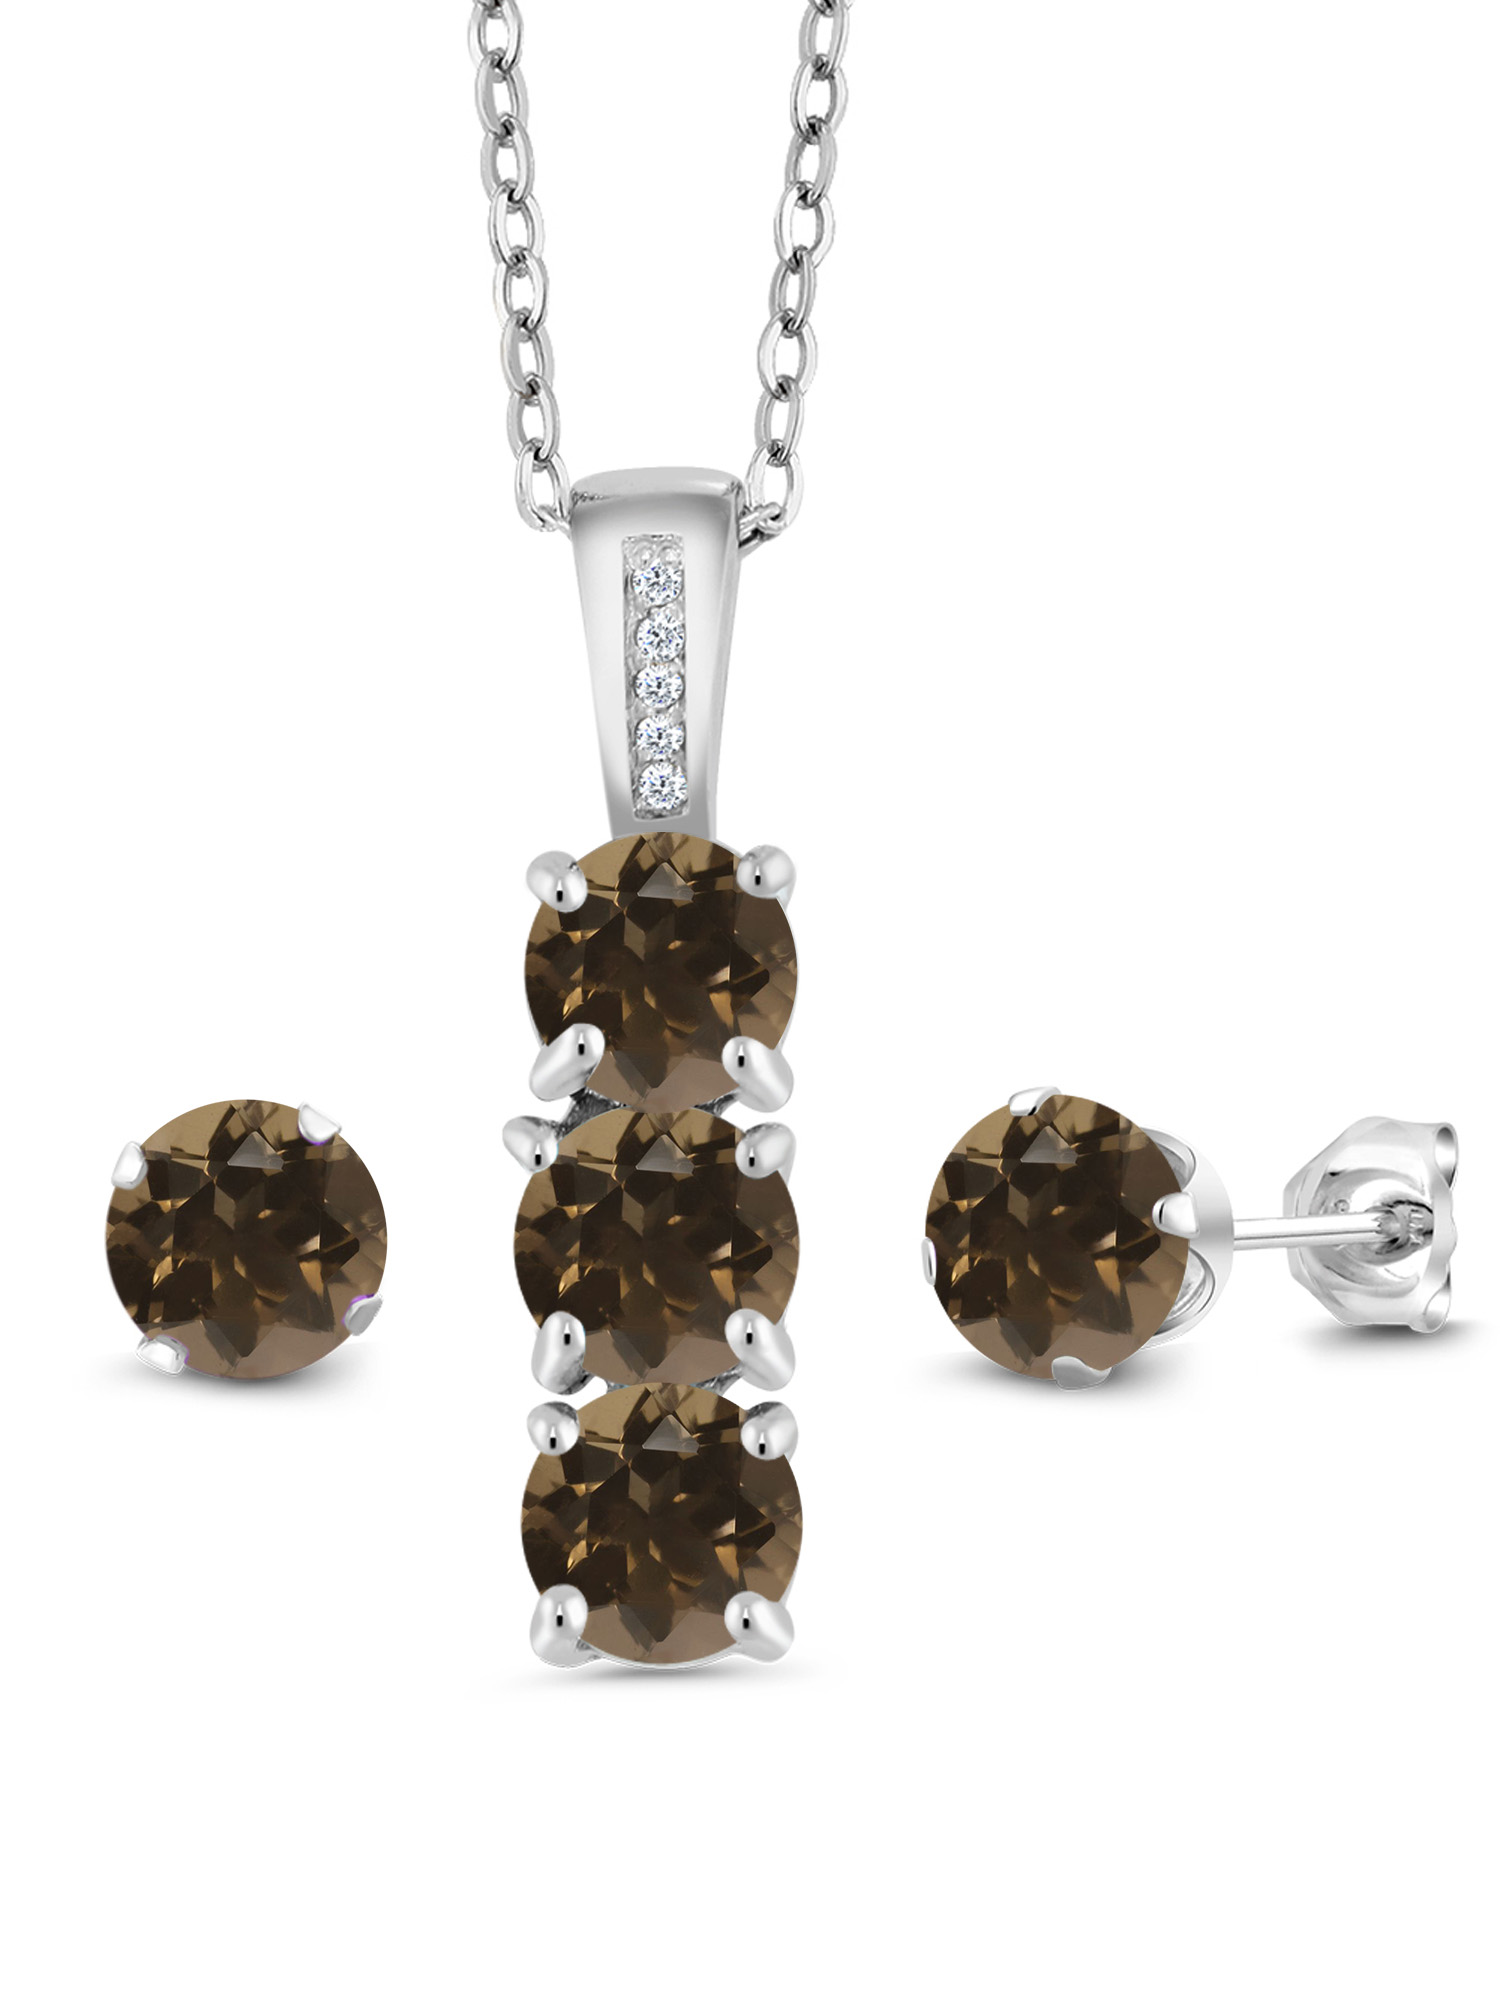 2.34 Ct Brown Smoky Quartz White Diamond 925 Silver Pendant Earrings Set